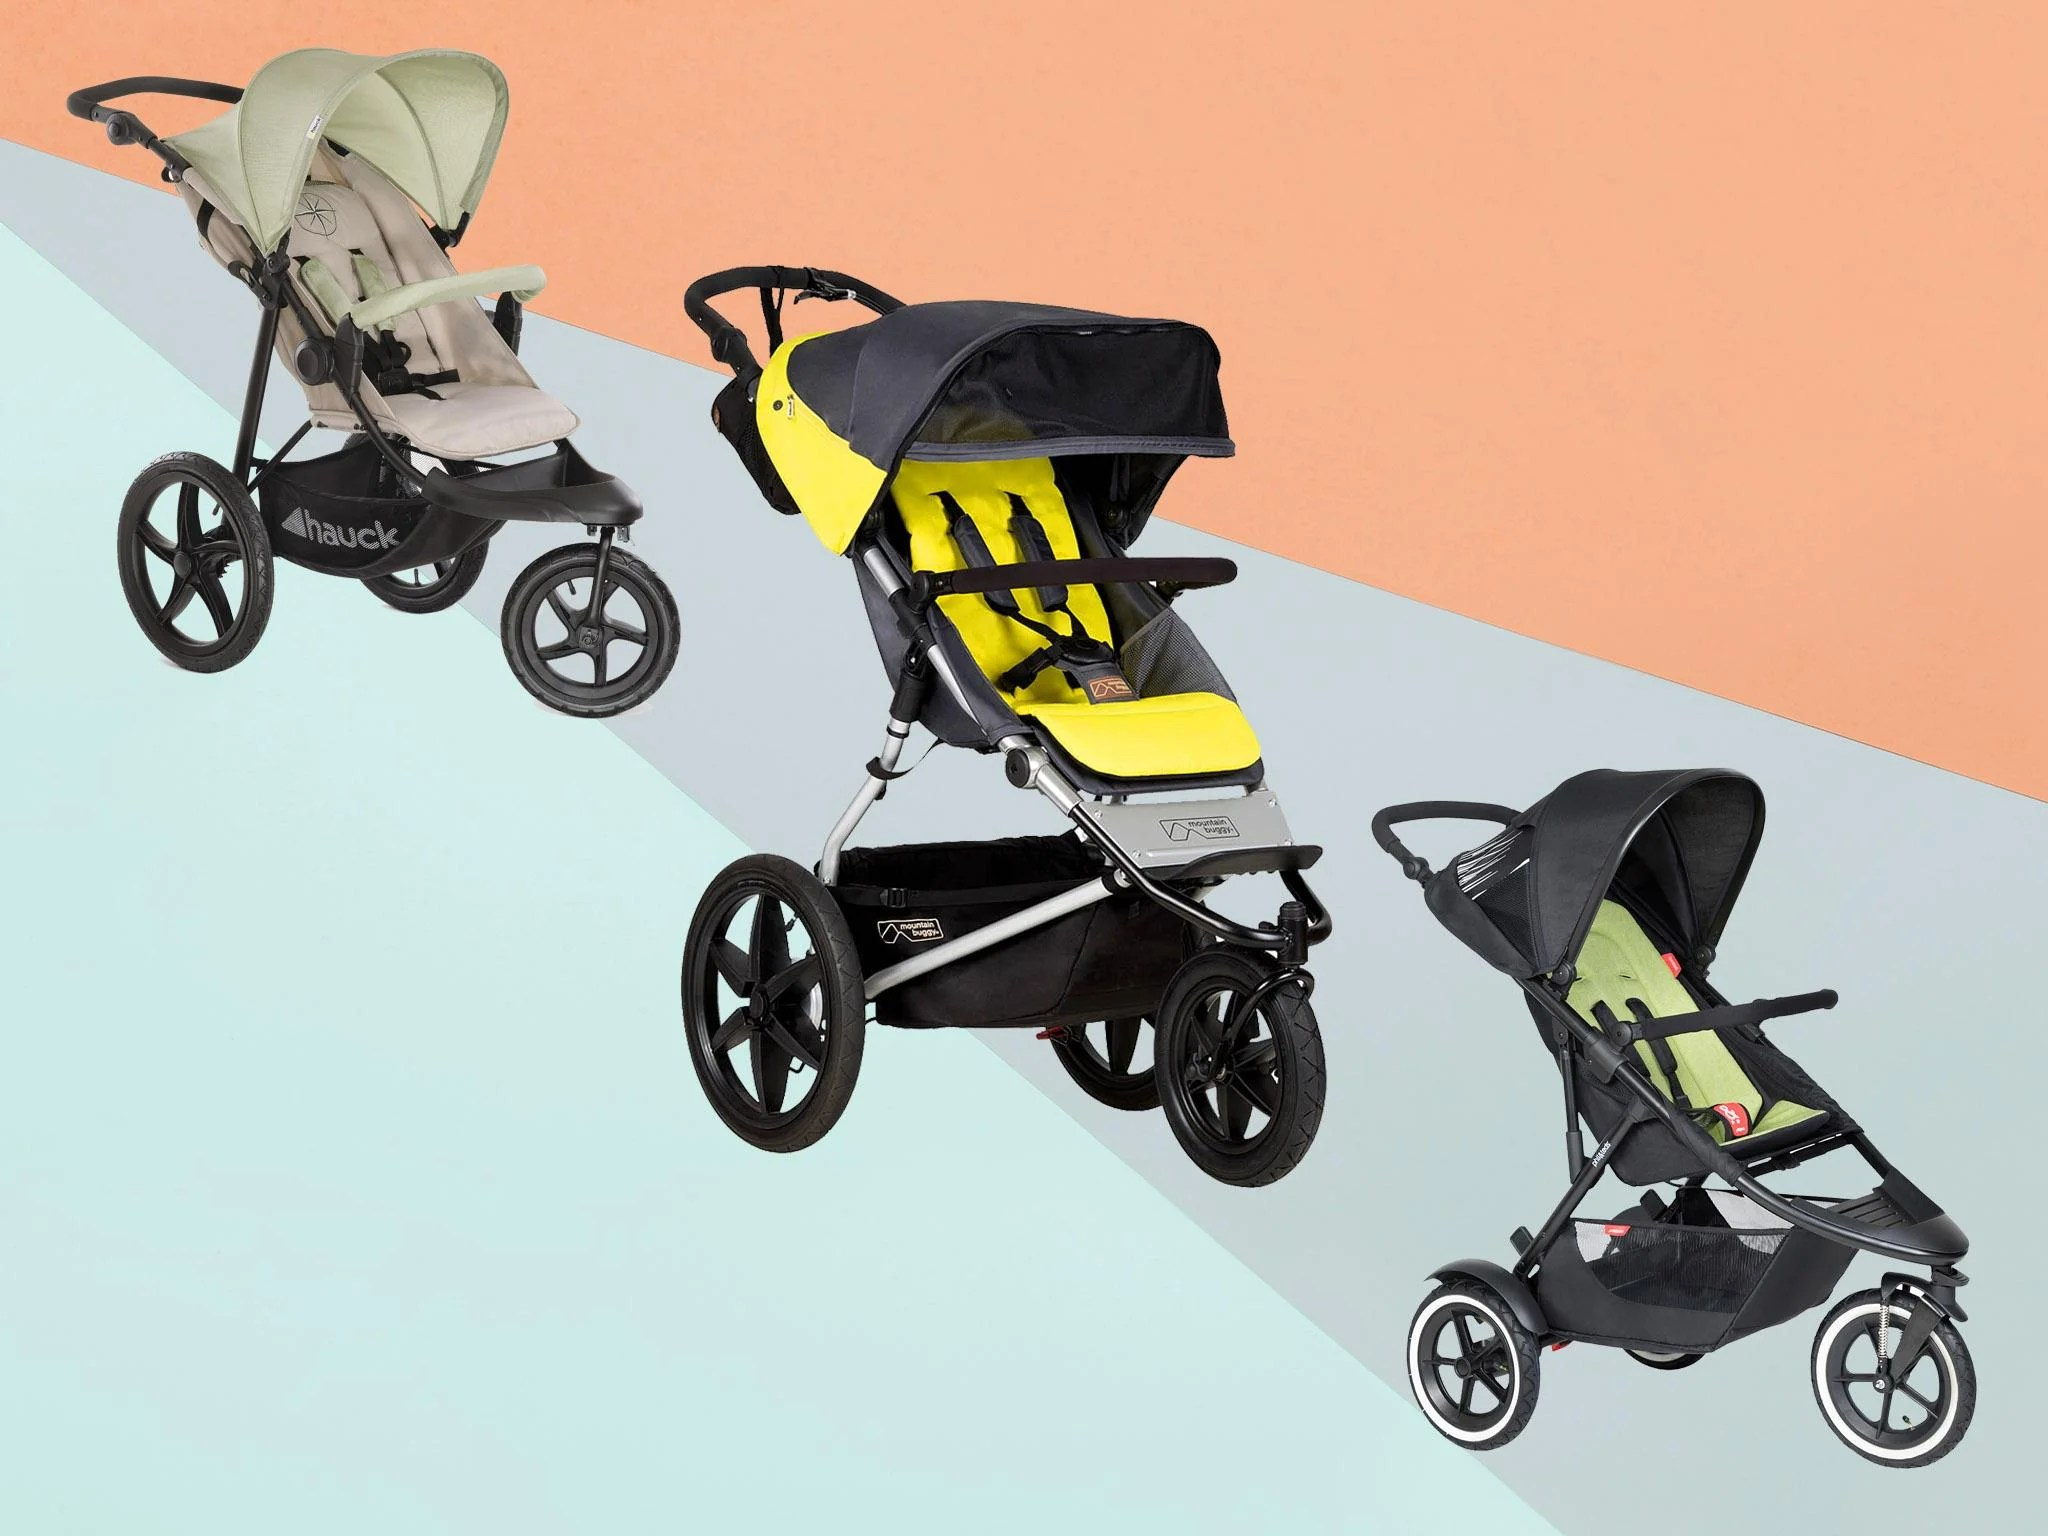 Best Newborn Prams Australia 2018 Best Jogging Stroller For Keeping Fit With Your Baby And Toddler